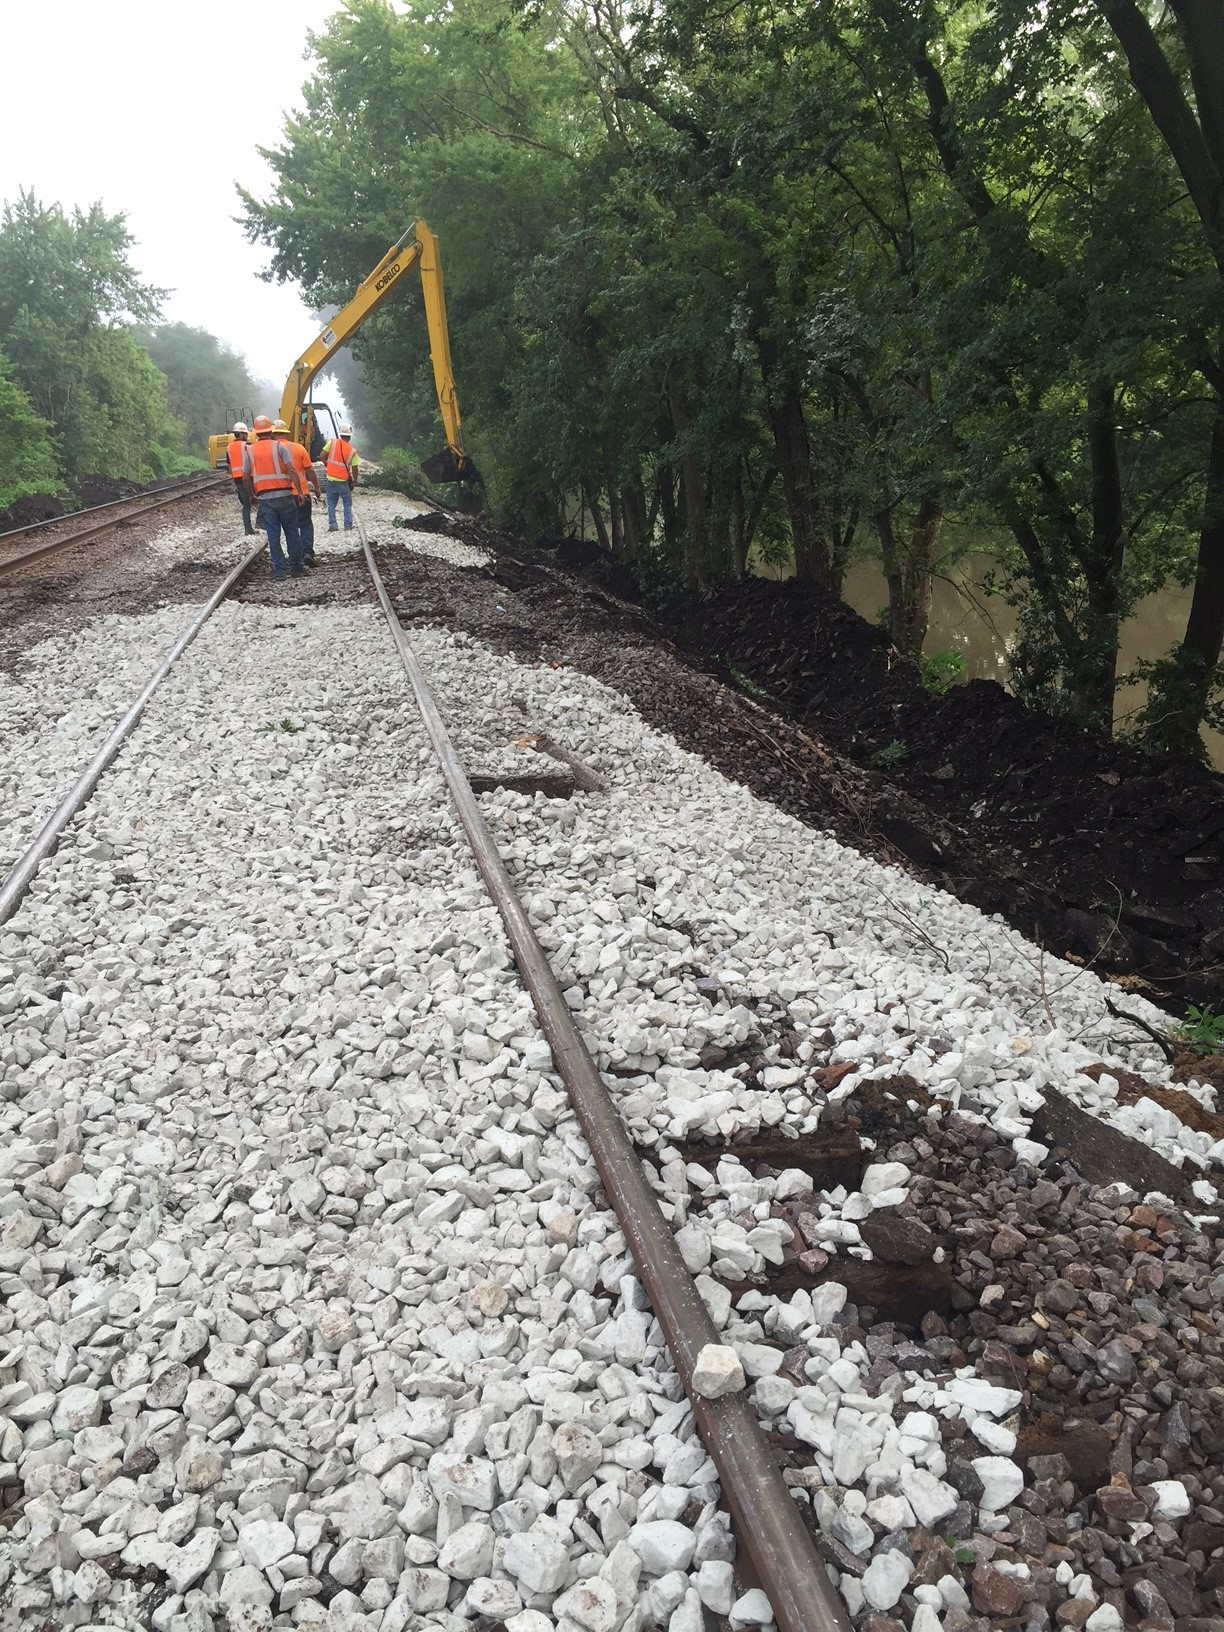 Snelten Inc. performing roadway maintenance on a railroad